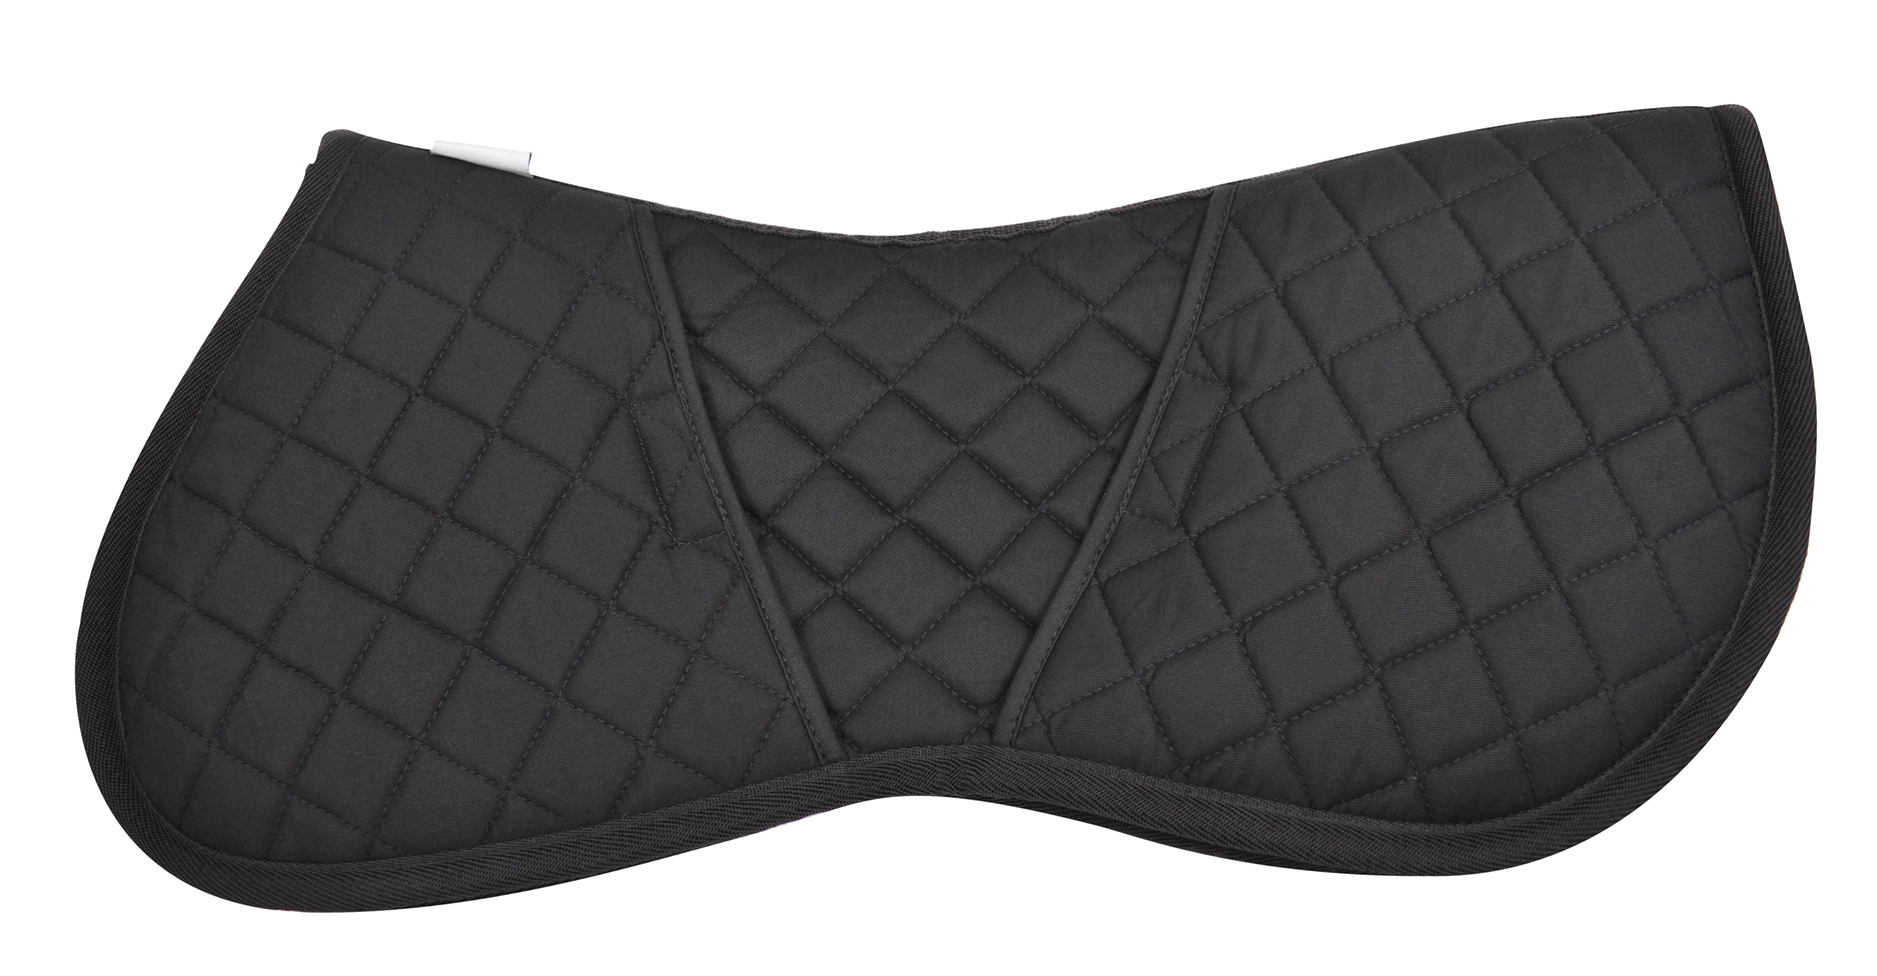 Lami-Cell Build Up Saddle Pad